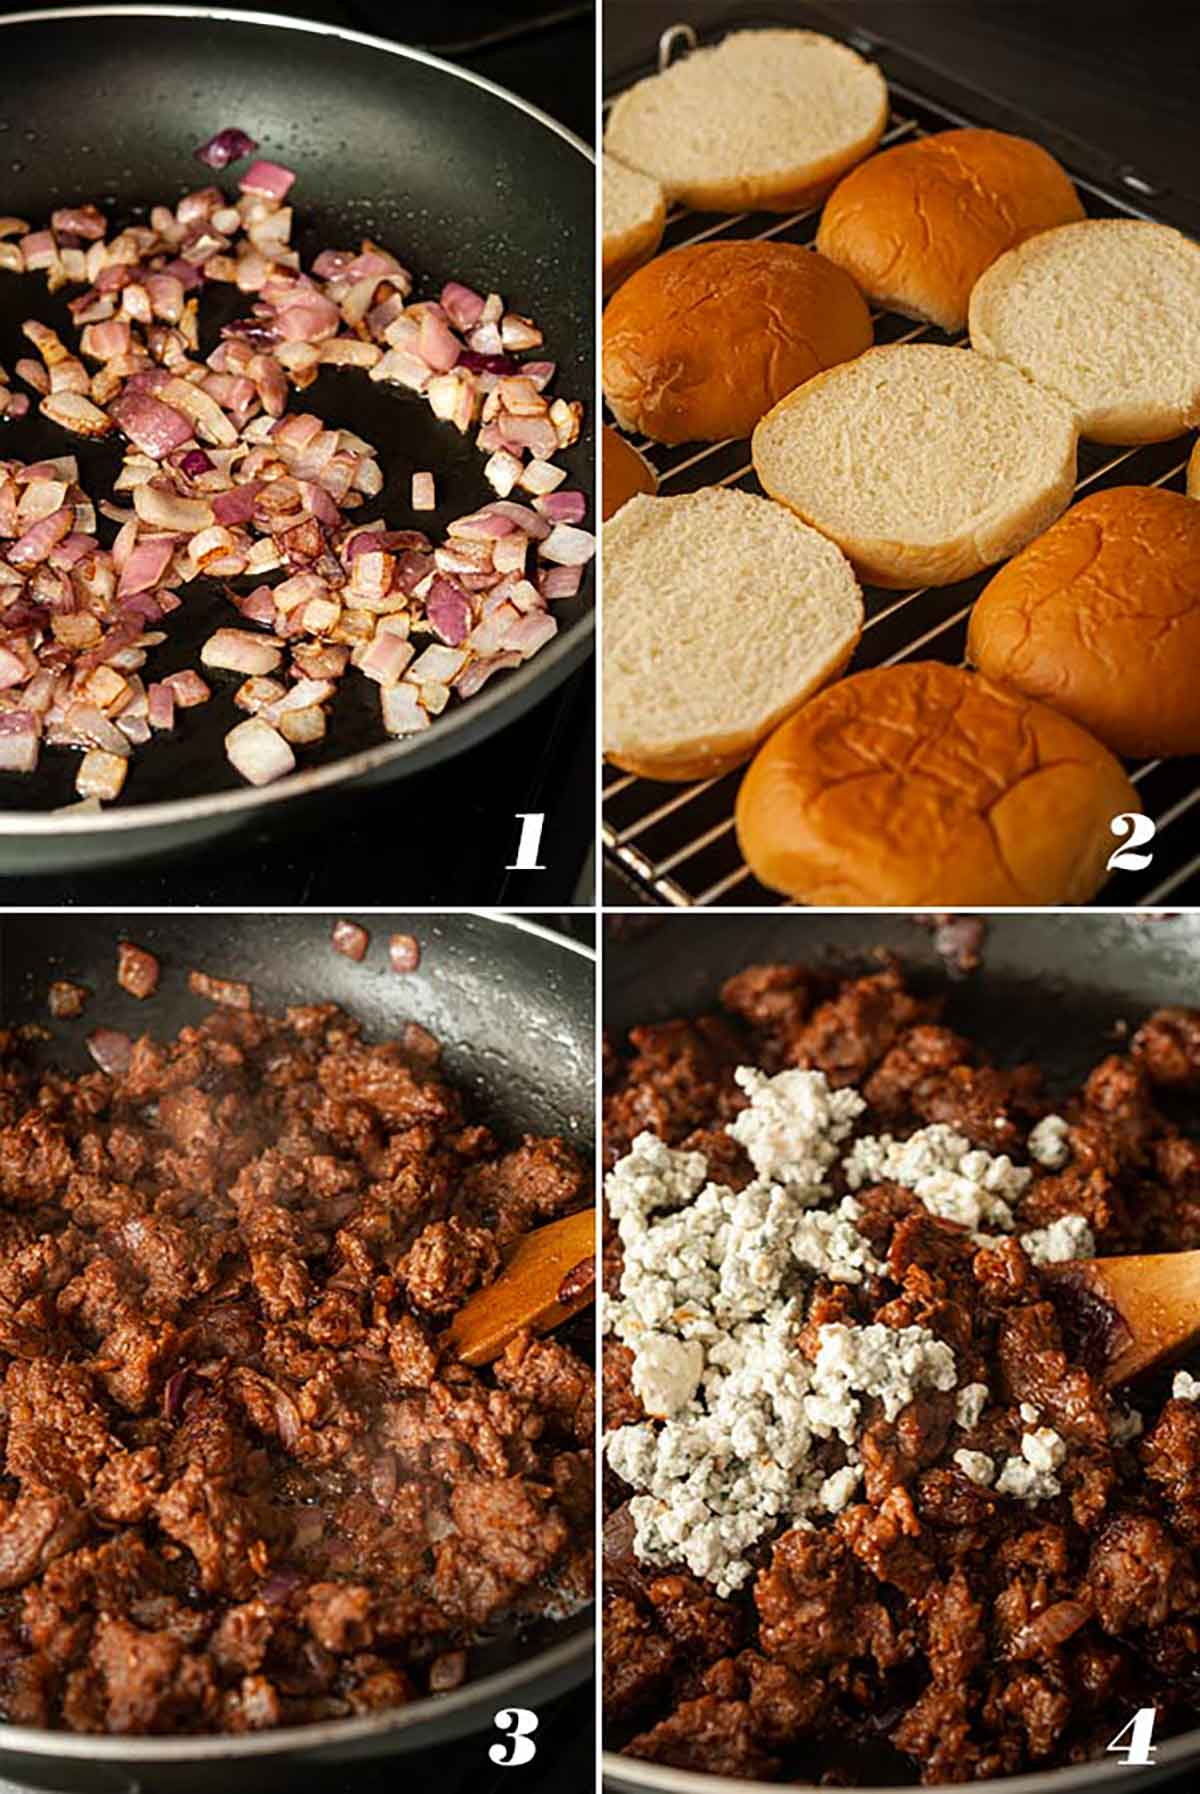 A collage of 4 numbered images showing how to prepare slider ingredients.